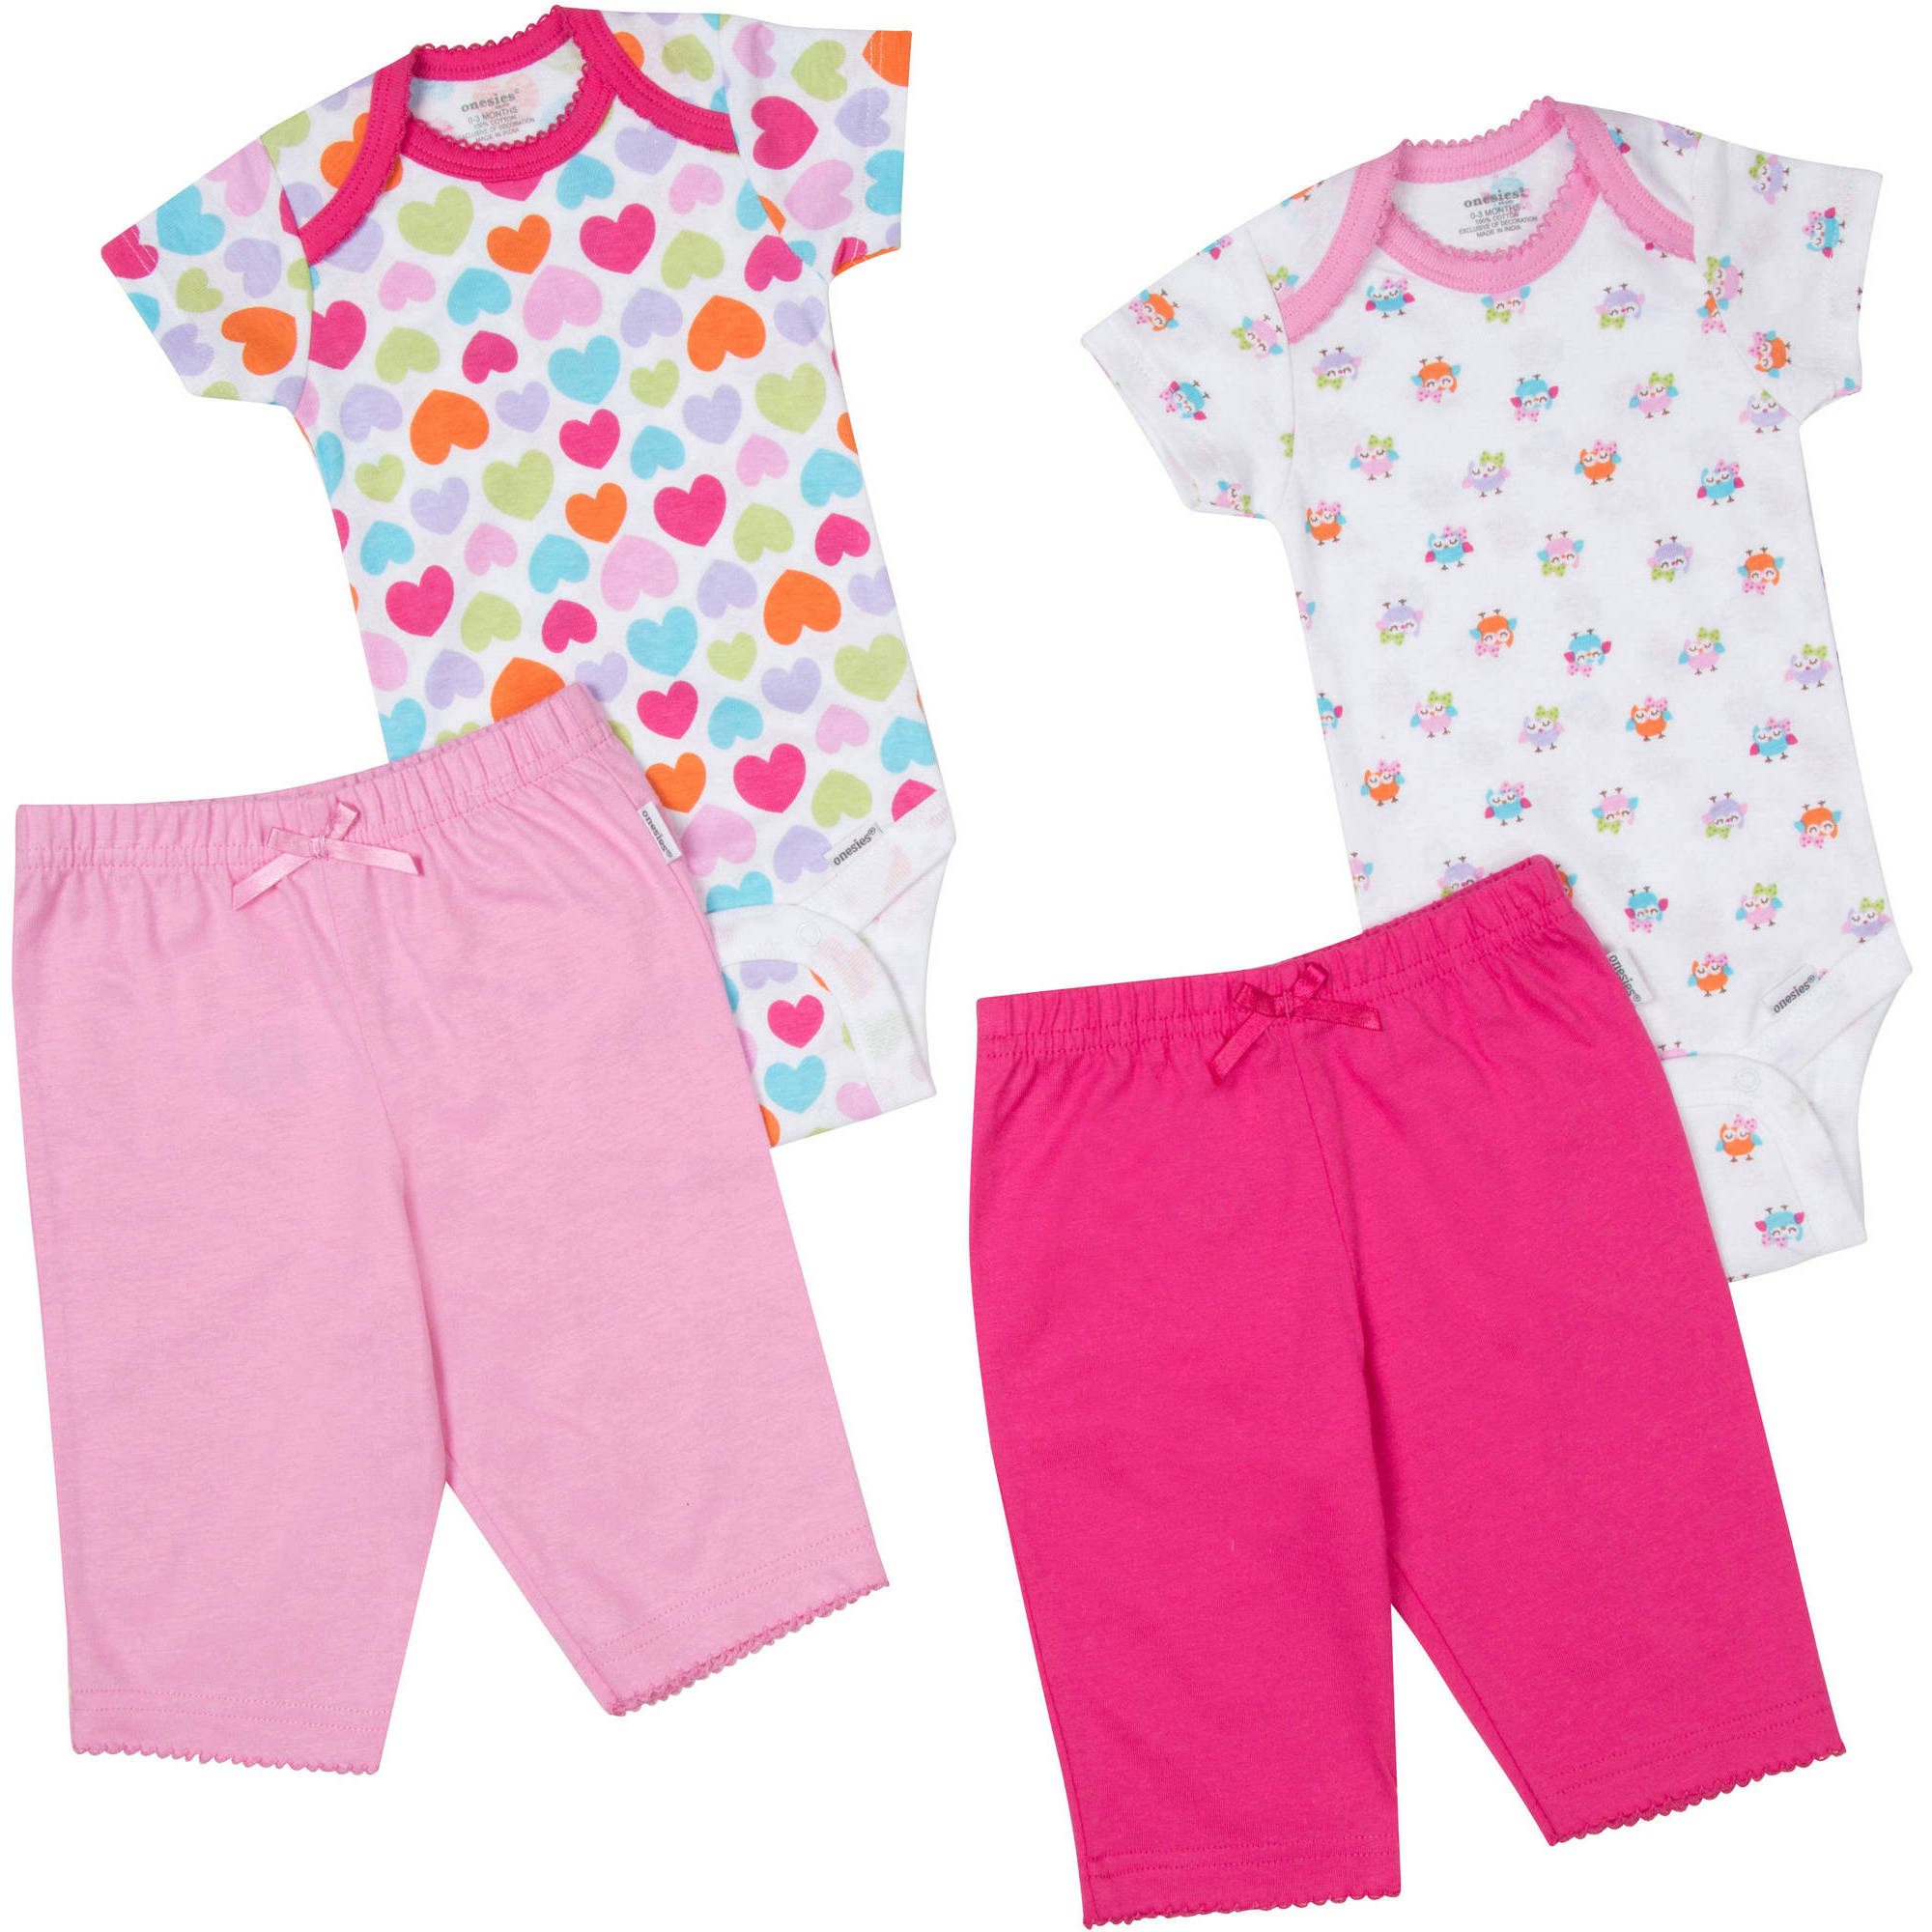 Onesies Brand Newborn Baby Girl Layette Set, 4-Piece